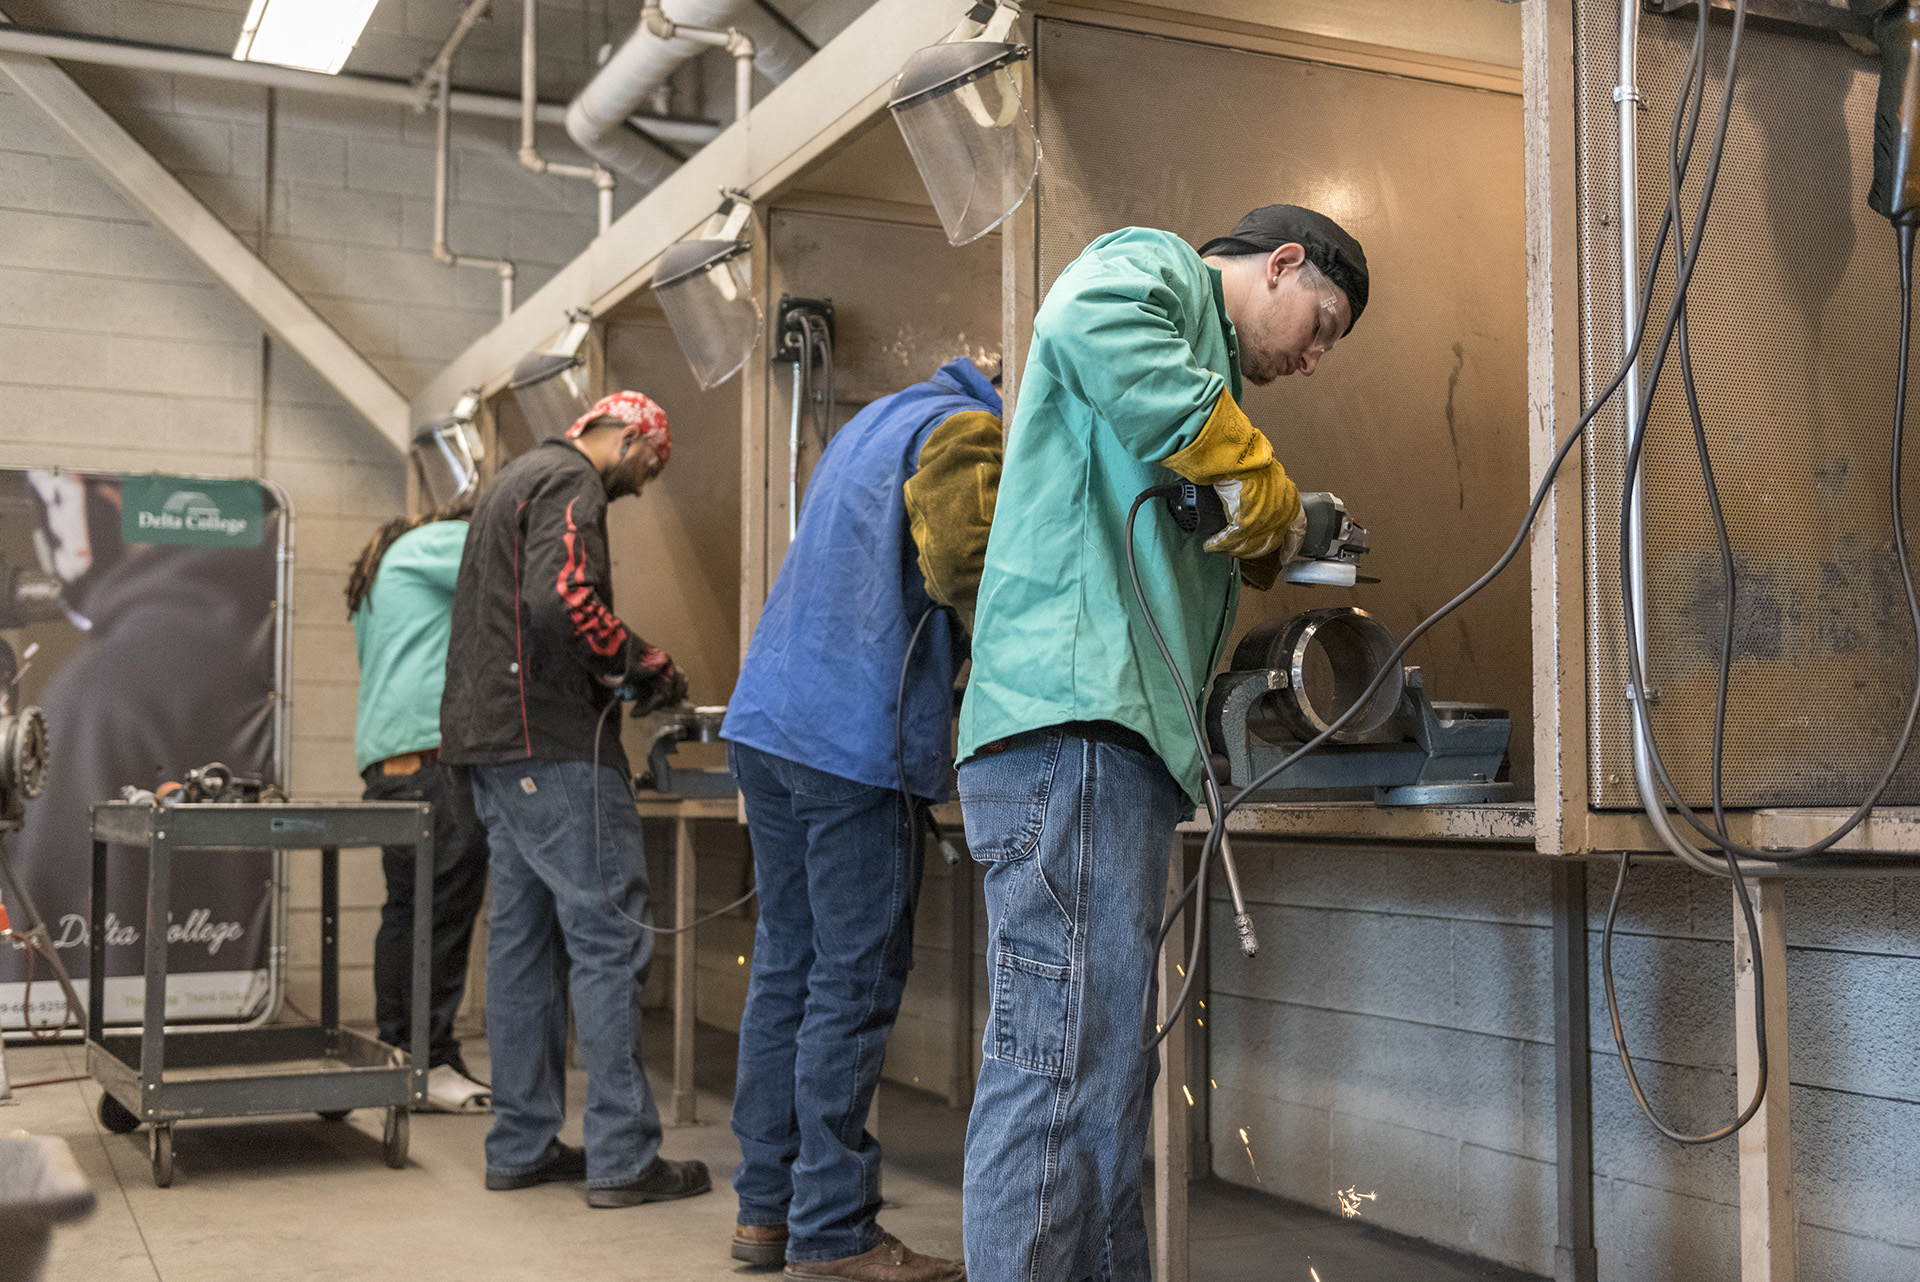 Students practice their hand welding skills in the welding lab.